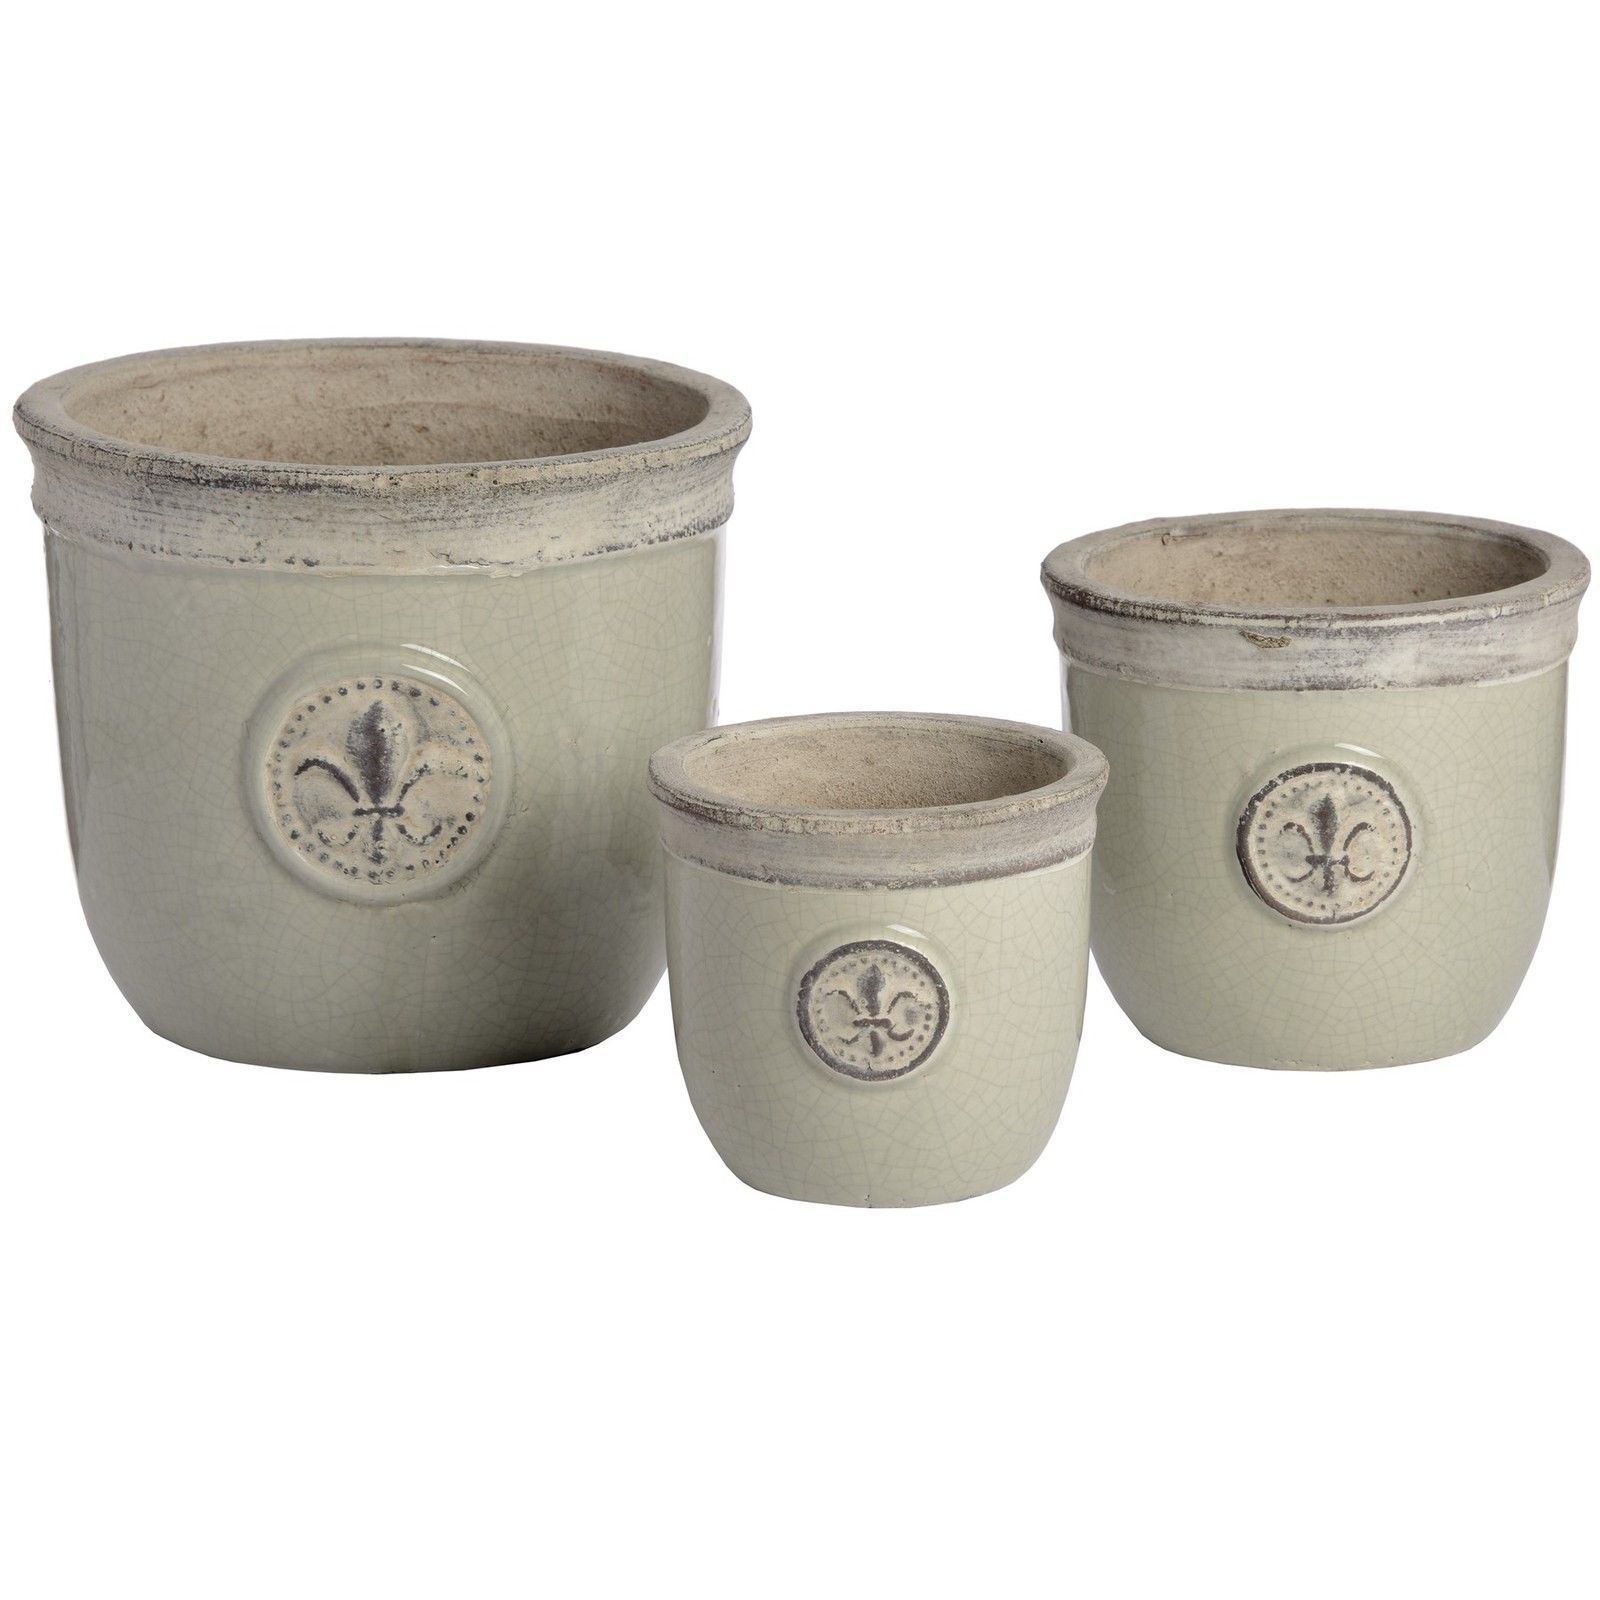 Planter Lys En Pot Three Ceramic Garden Planters Fleur De Lys Flower Plant Pot Pale Green